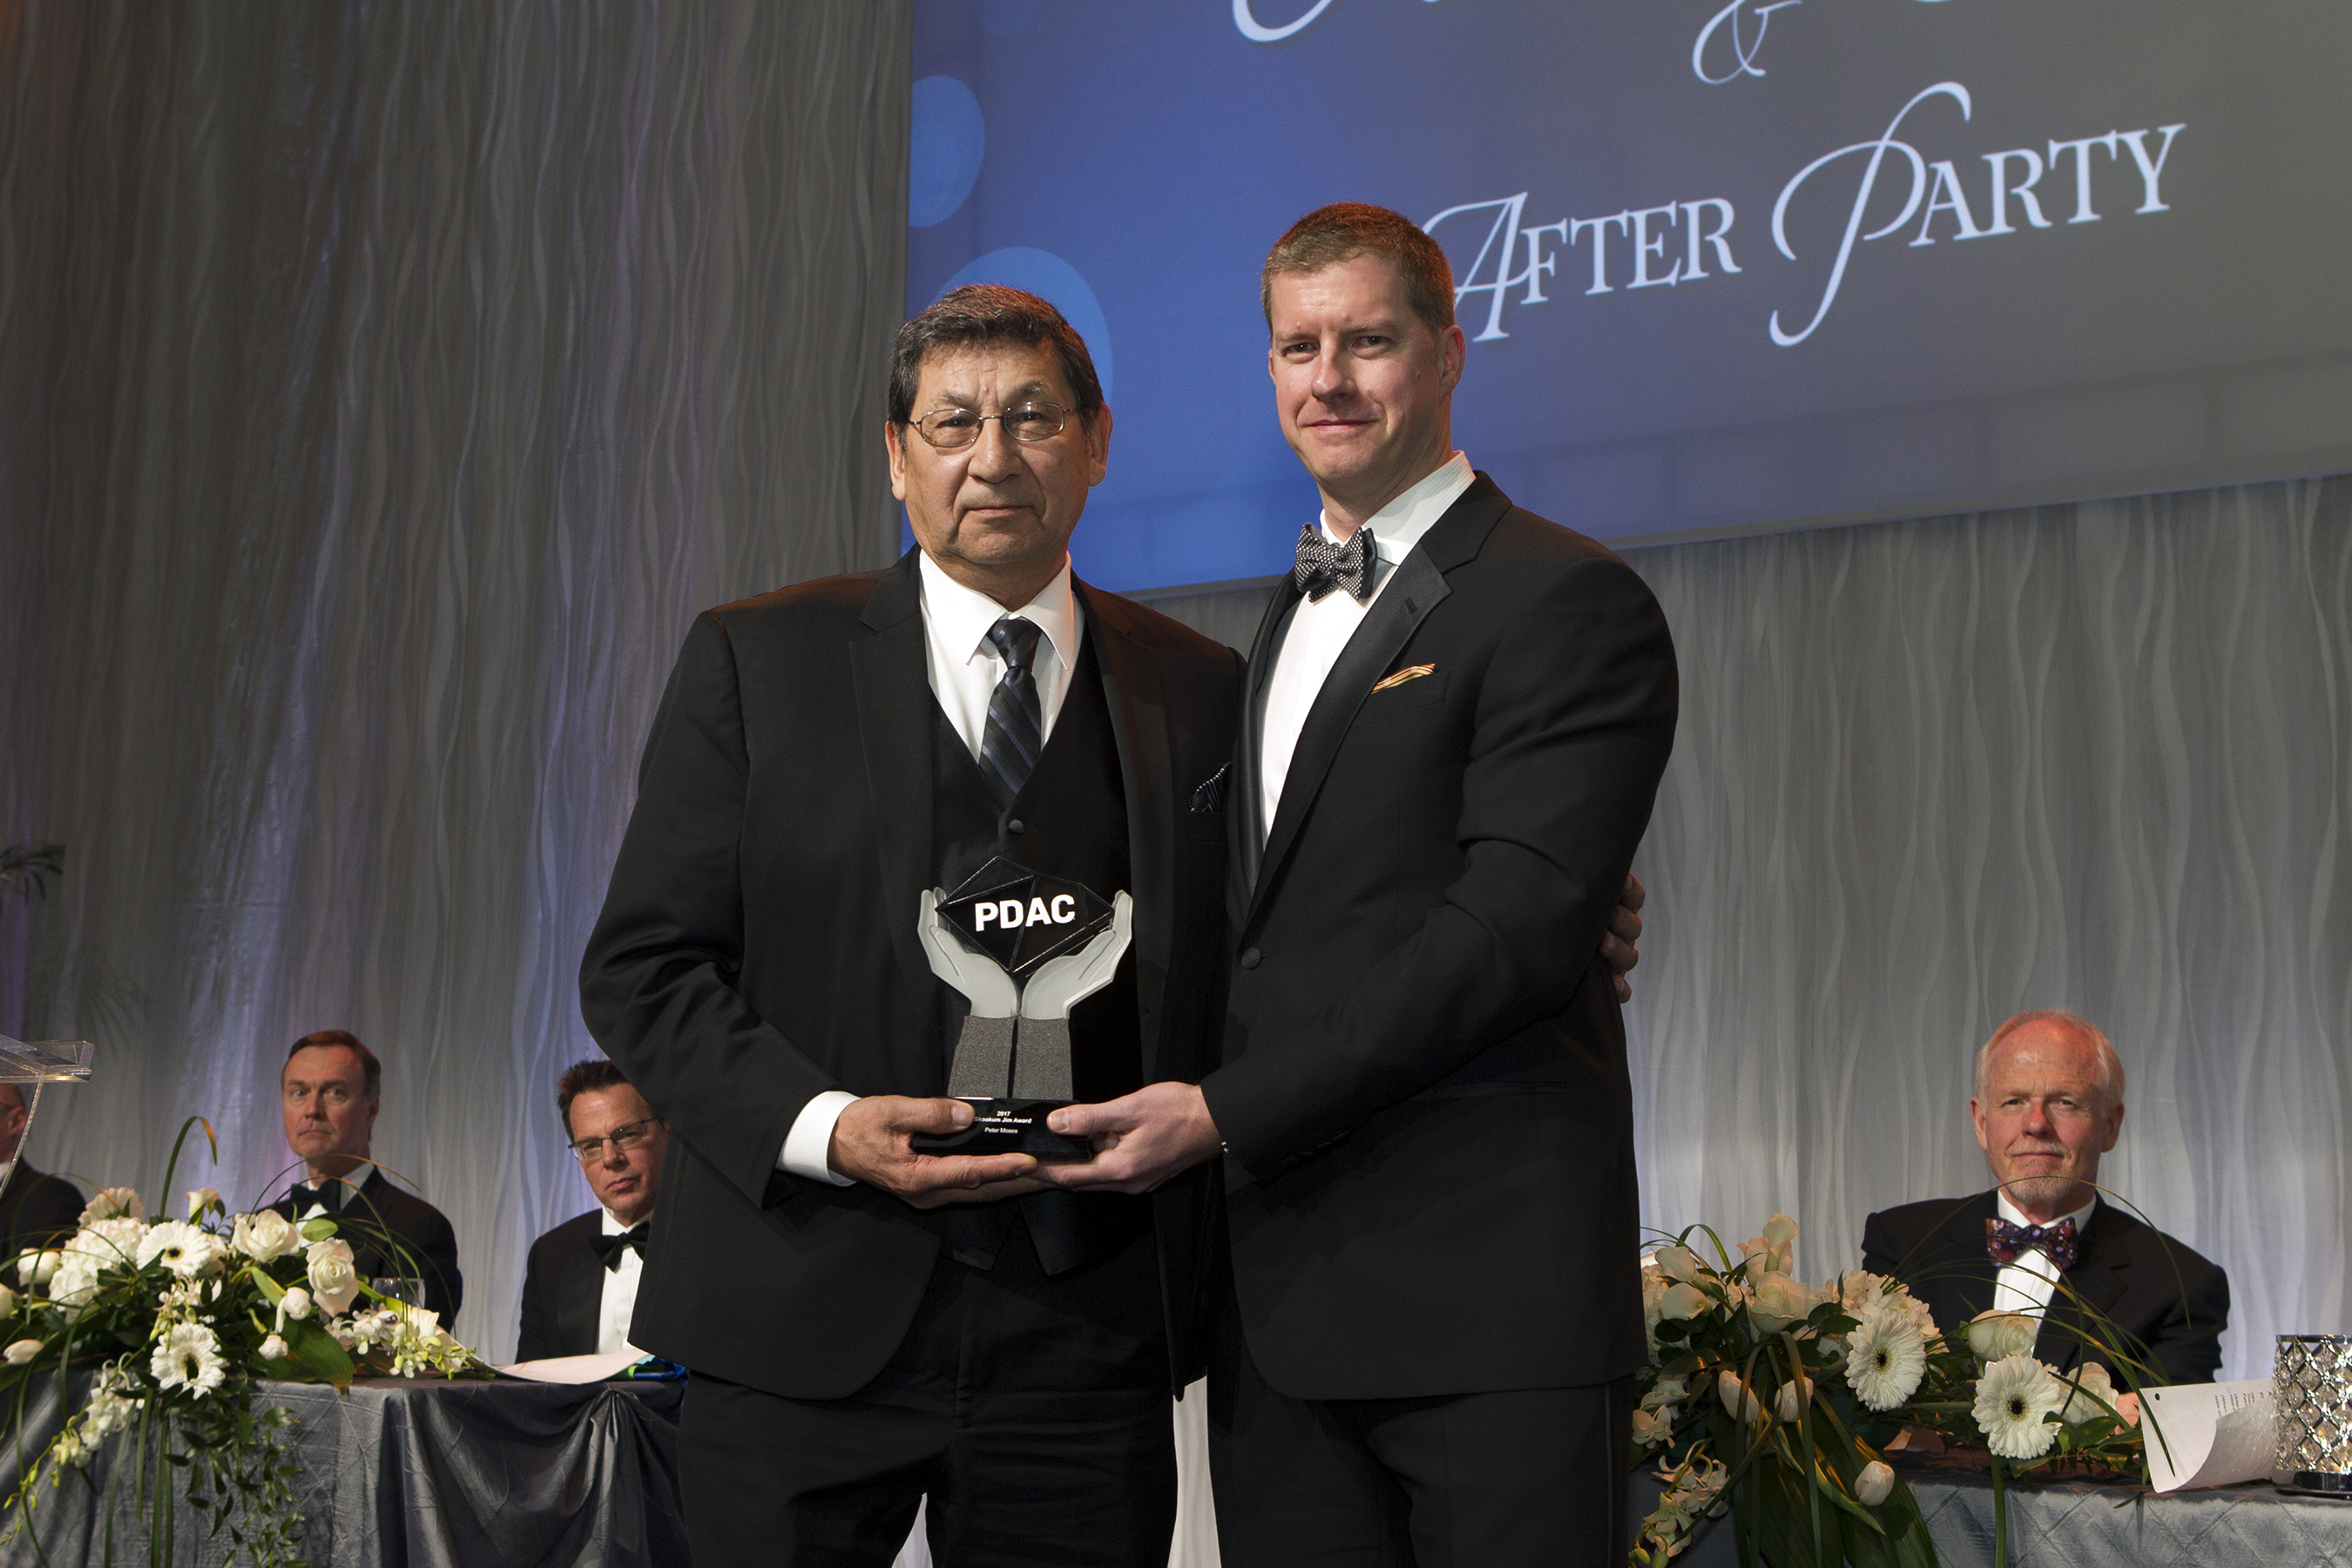 Skookum Jim Award recipient, Peter Moses & James Siddorn, Chair, Convention Planning Committee, SRK Consulting (Canada) Inc.